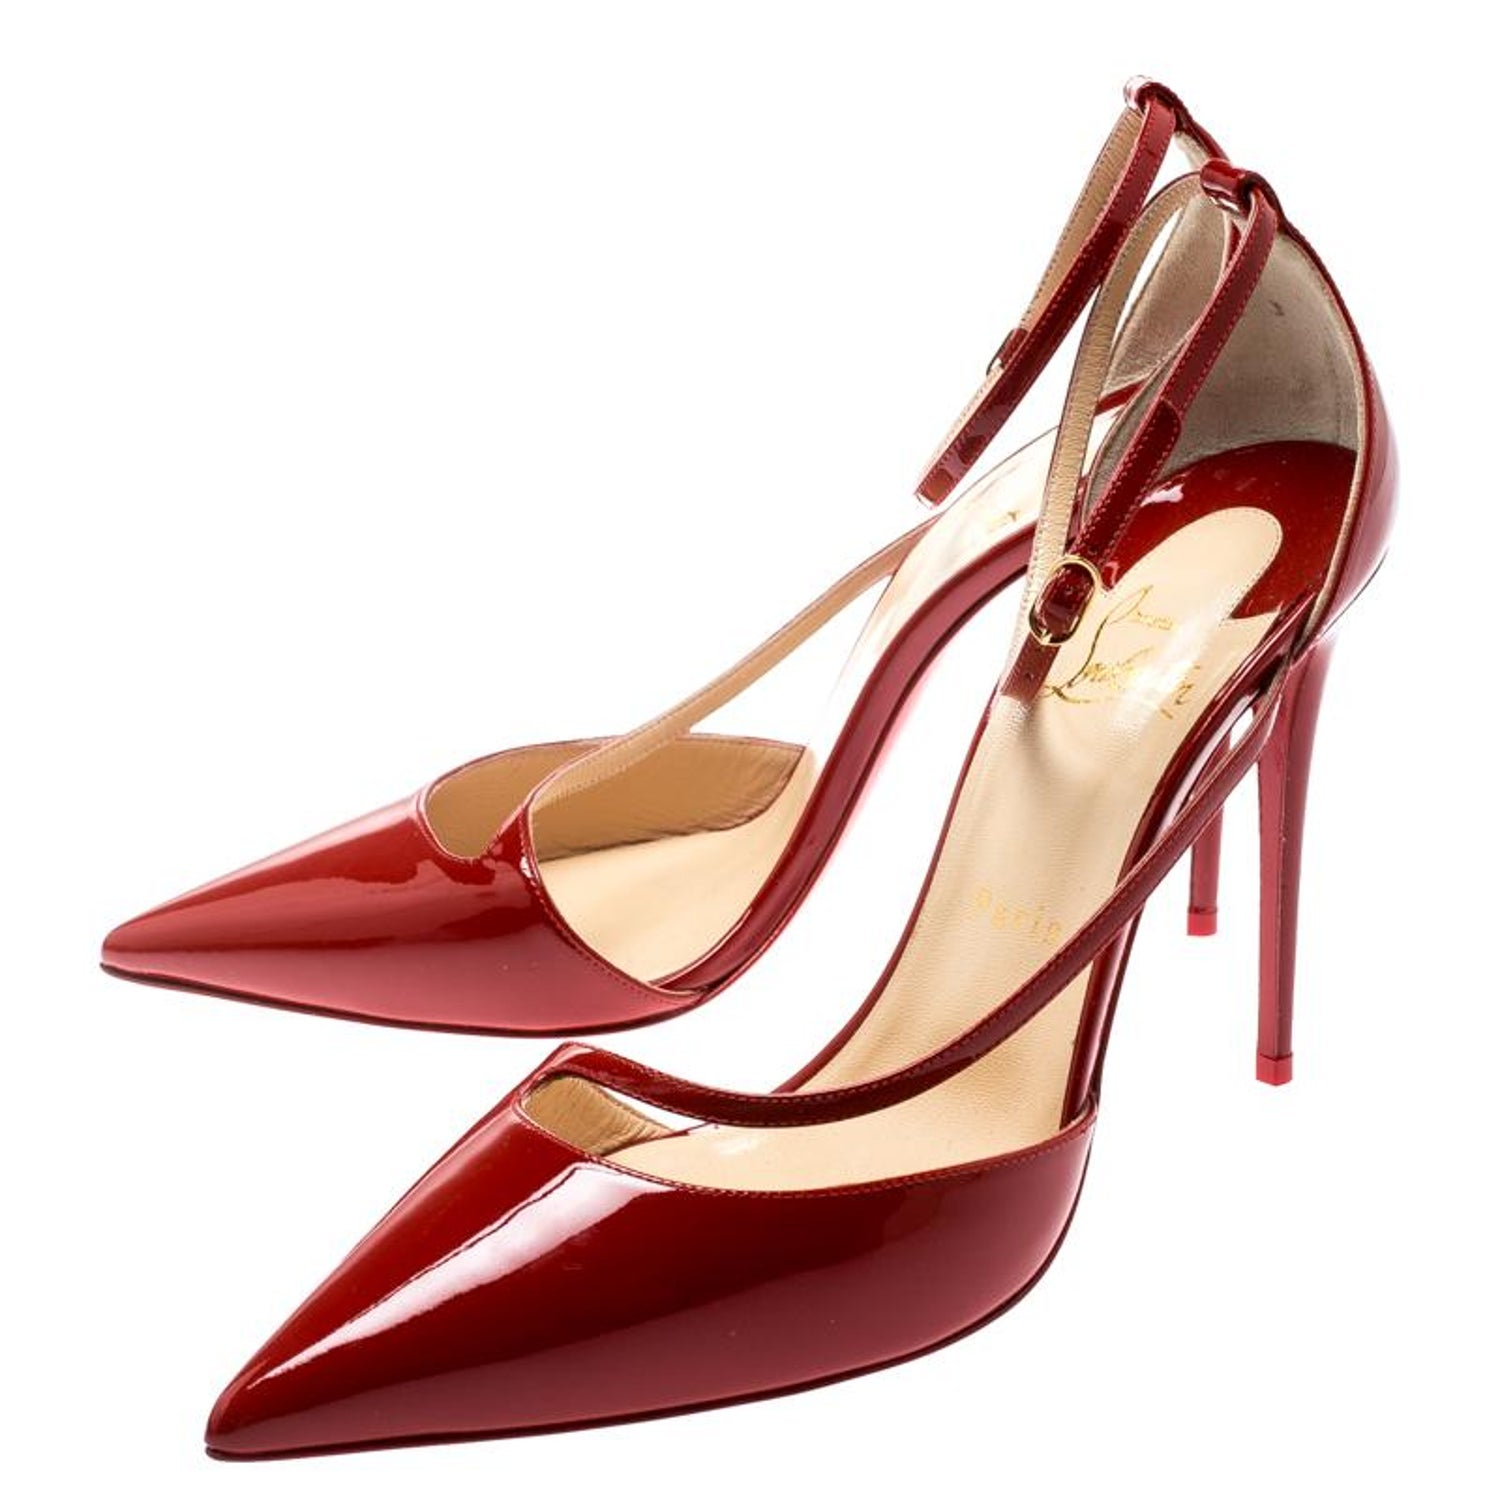 4f32ef580cb Christian Louboutin Red Patent Leather Ankle Strap Toe Pumps Size 39